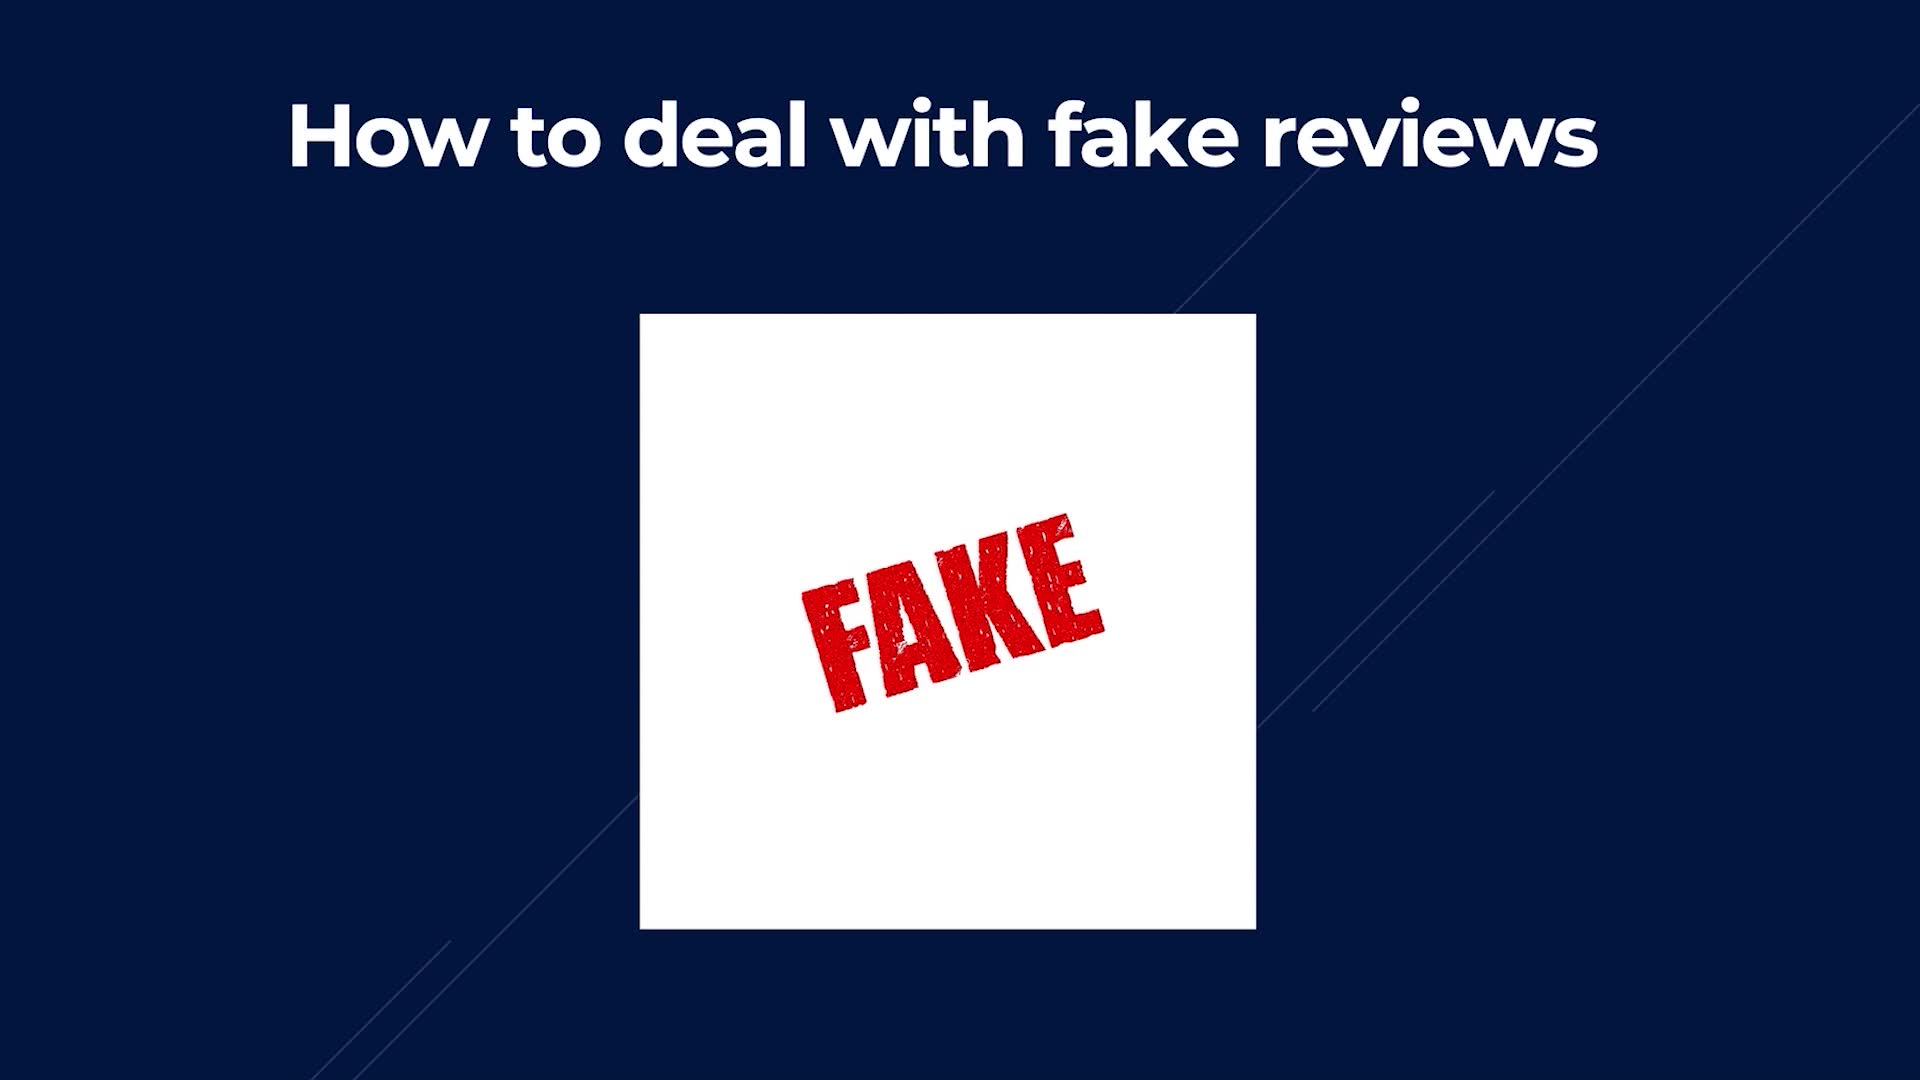 How To Deal With Fake Reviews